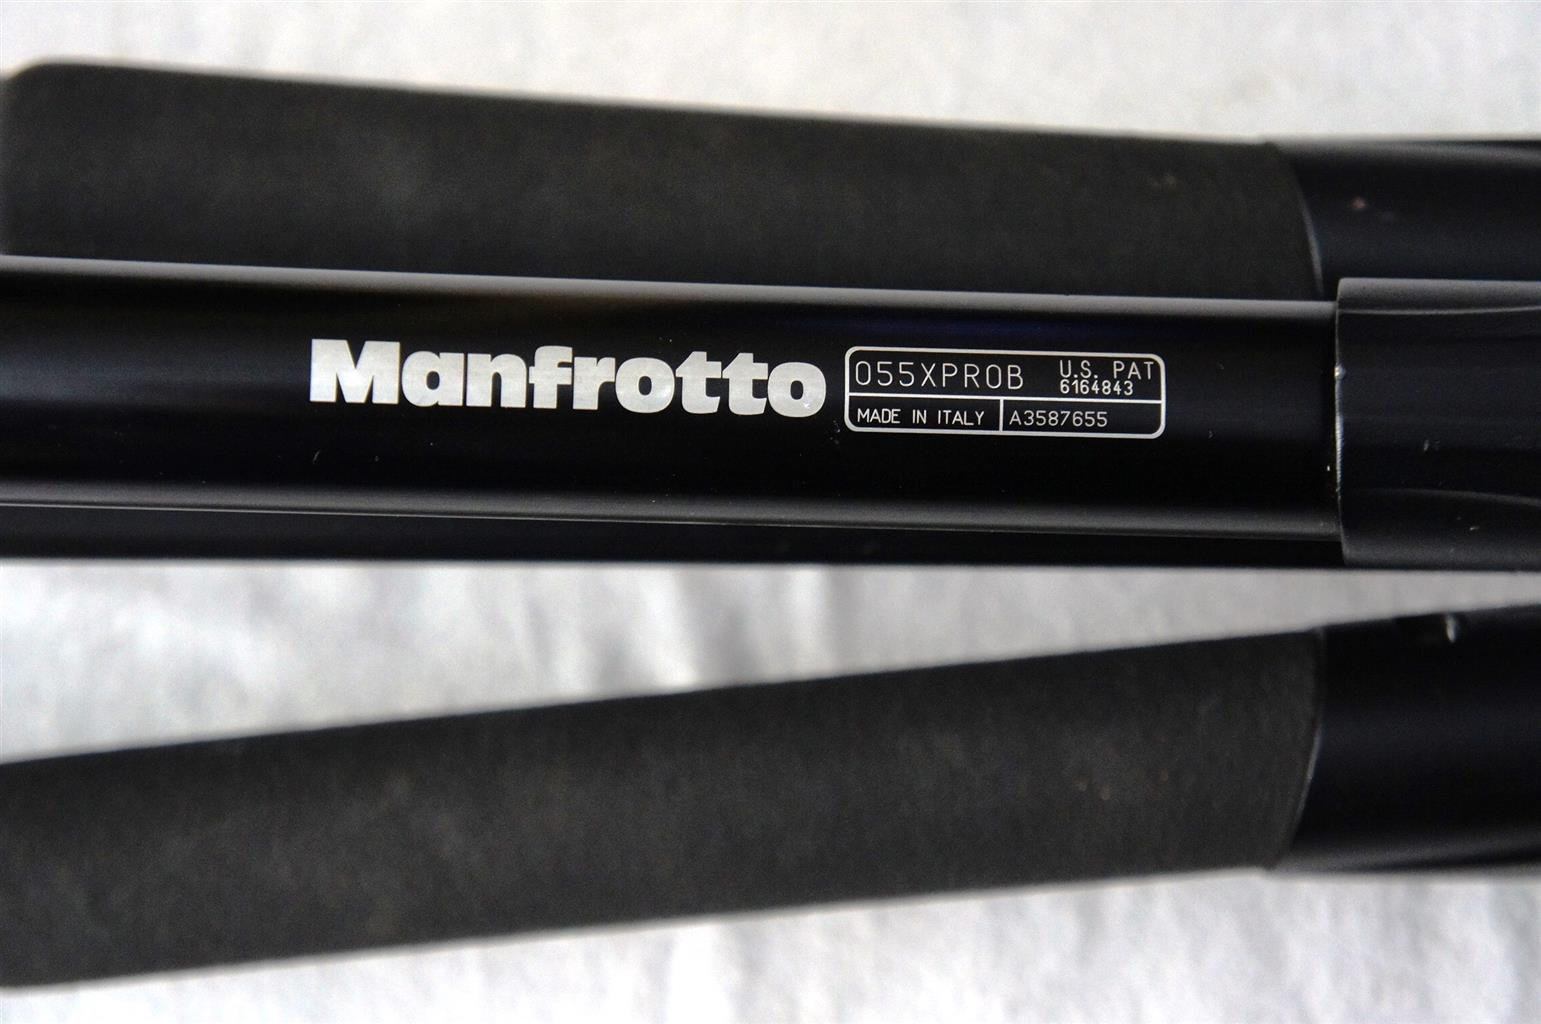 Manfrotto 055XPROB Tripod legs with Manfrotto 804Rc2 Head